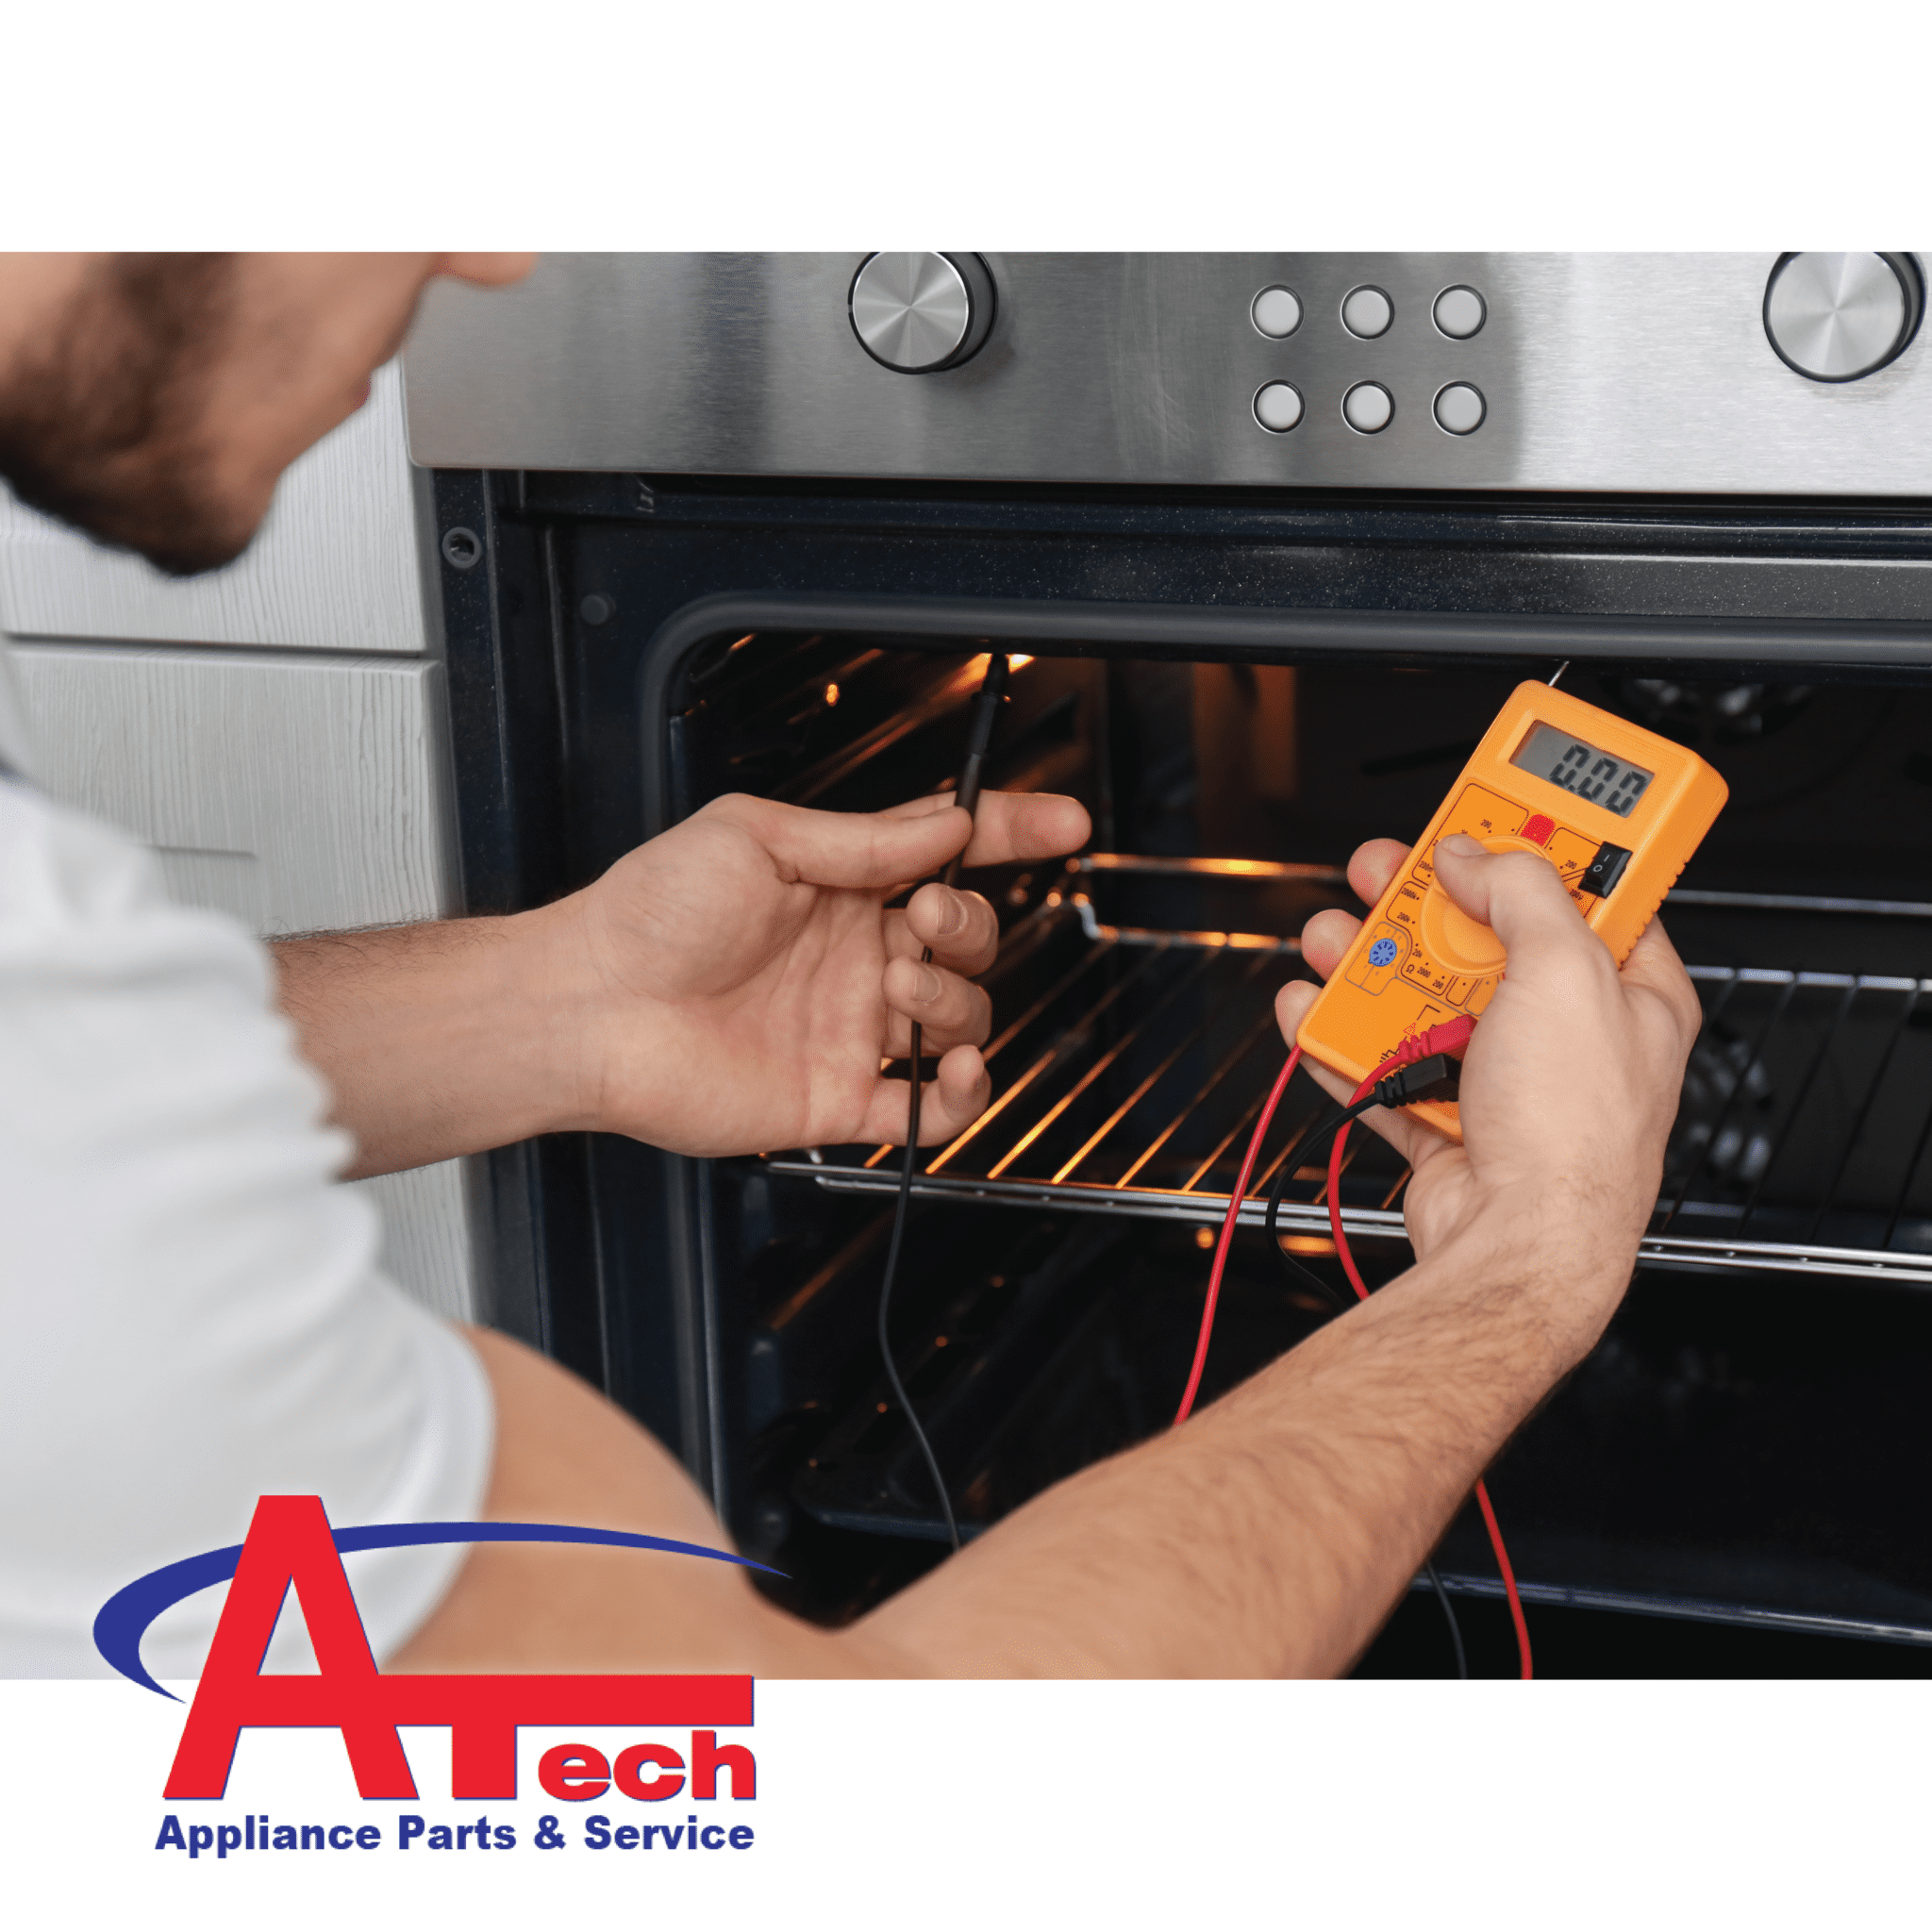 What You Should Be Looking for in an Appliance Repair